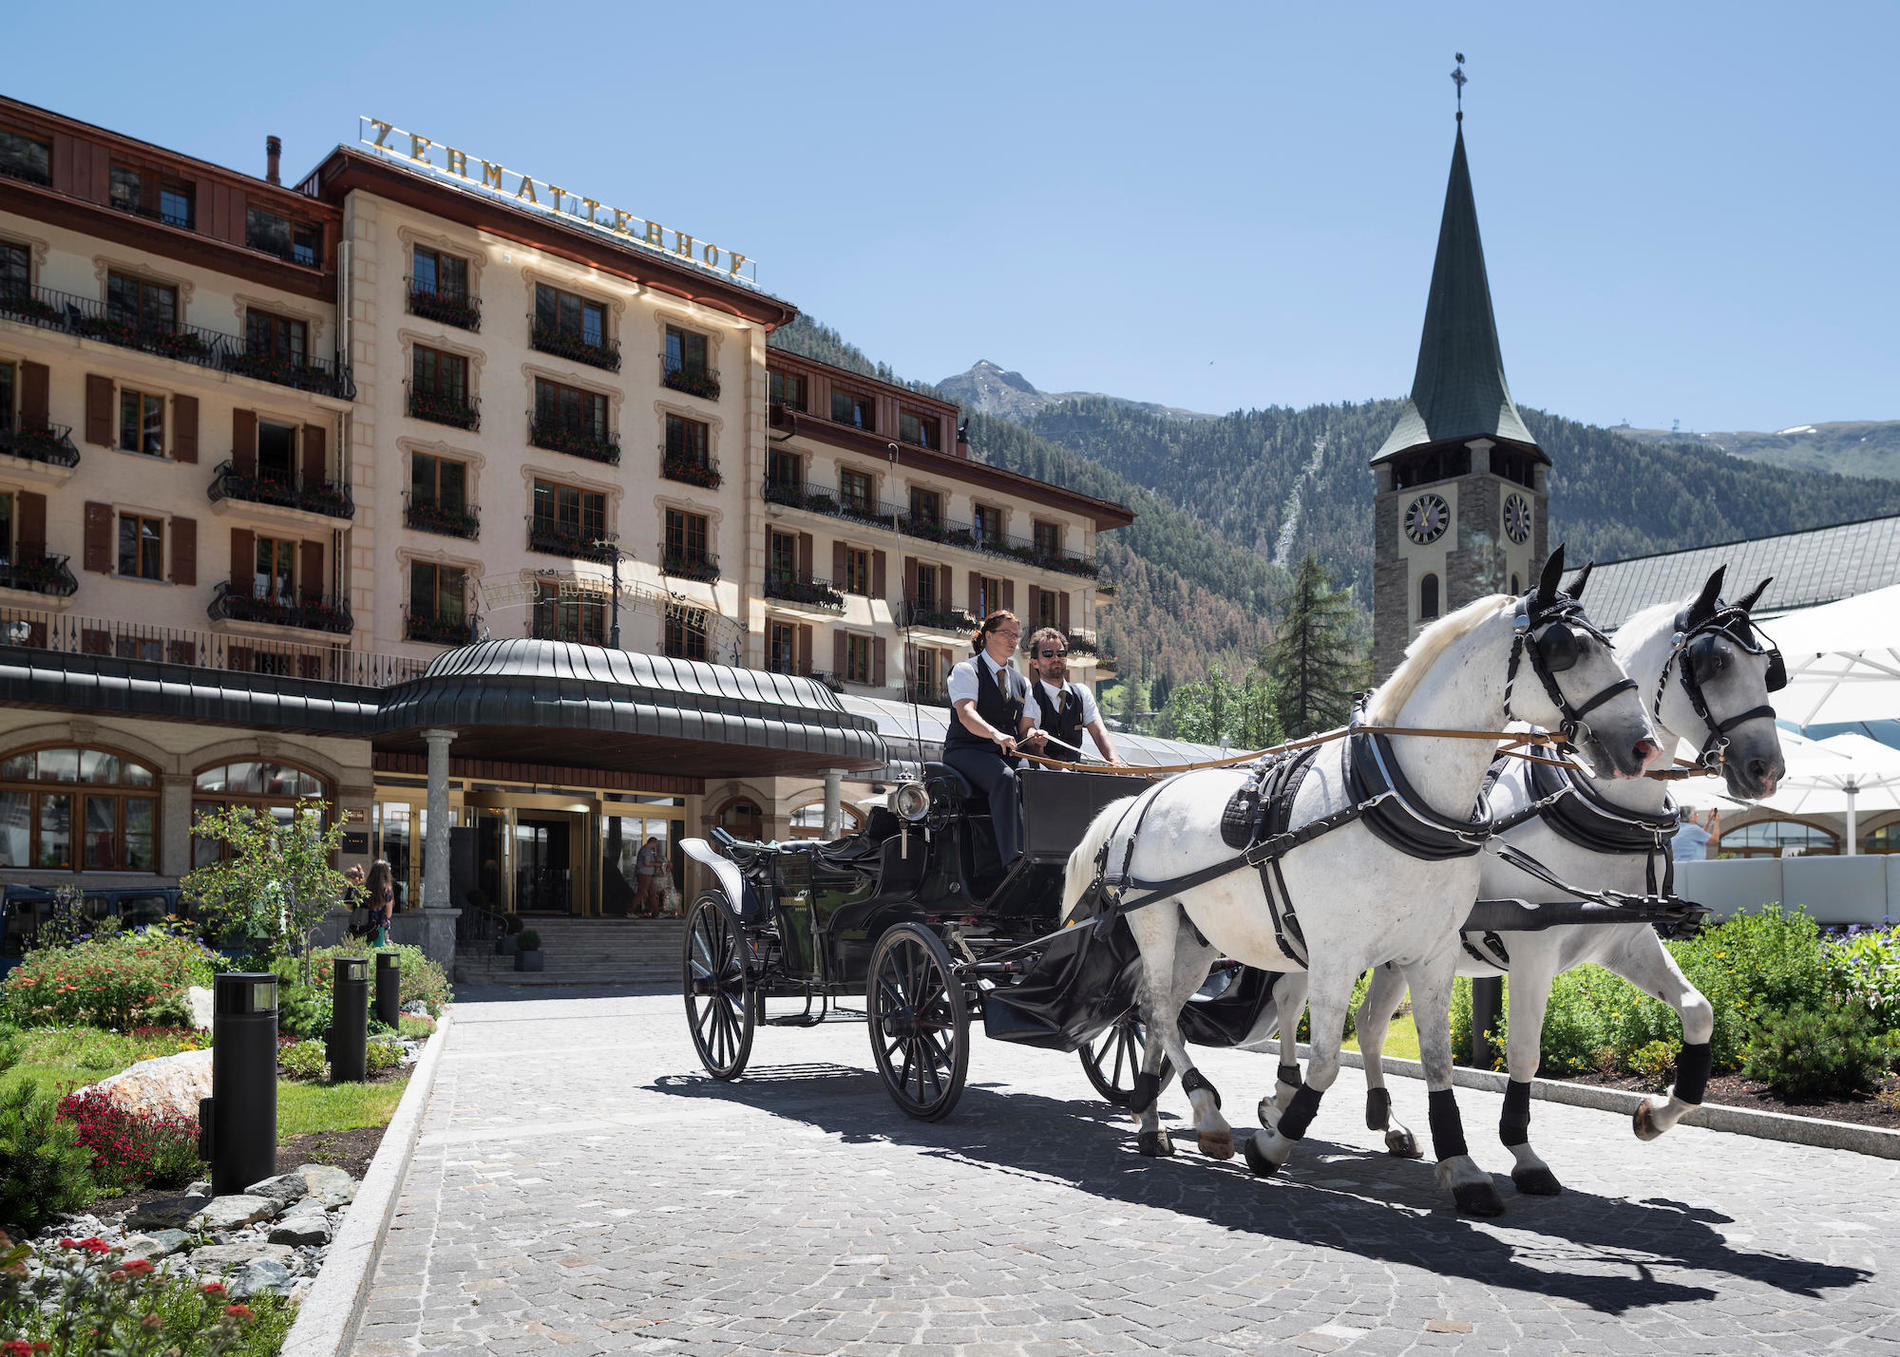 Grand Hotel Zermatterhof - Horse drawn carriage